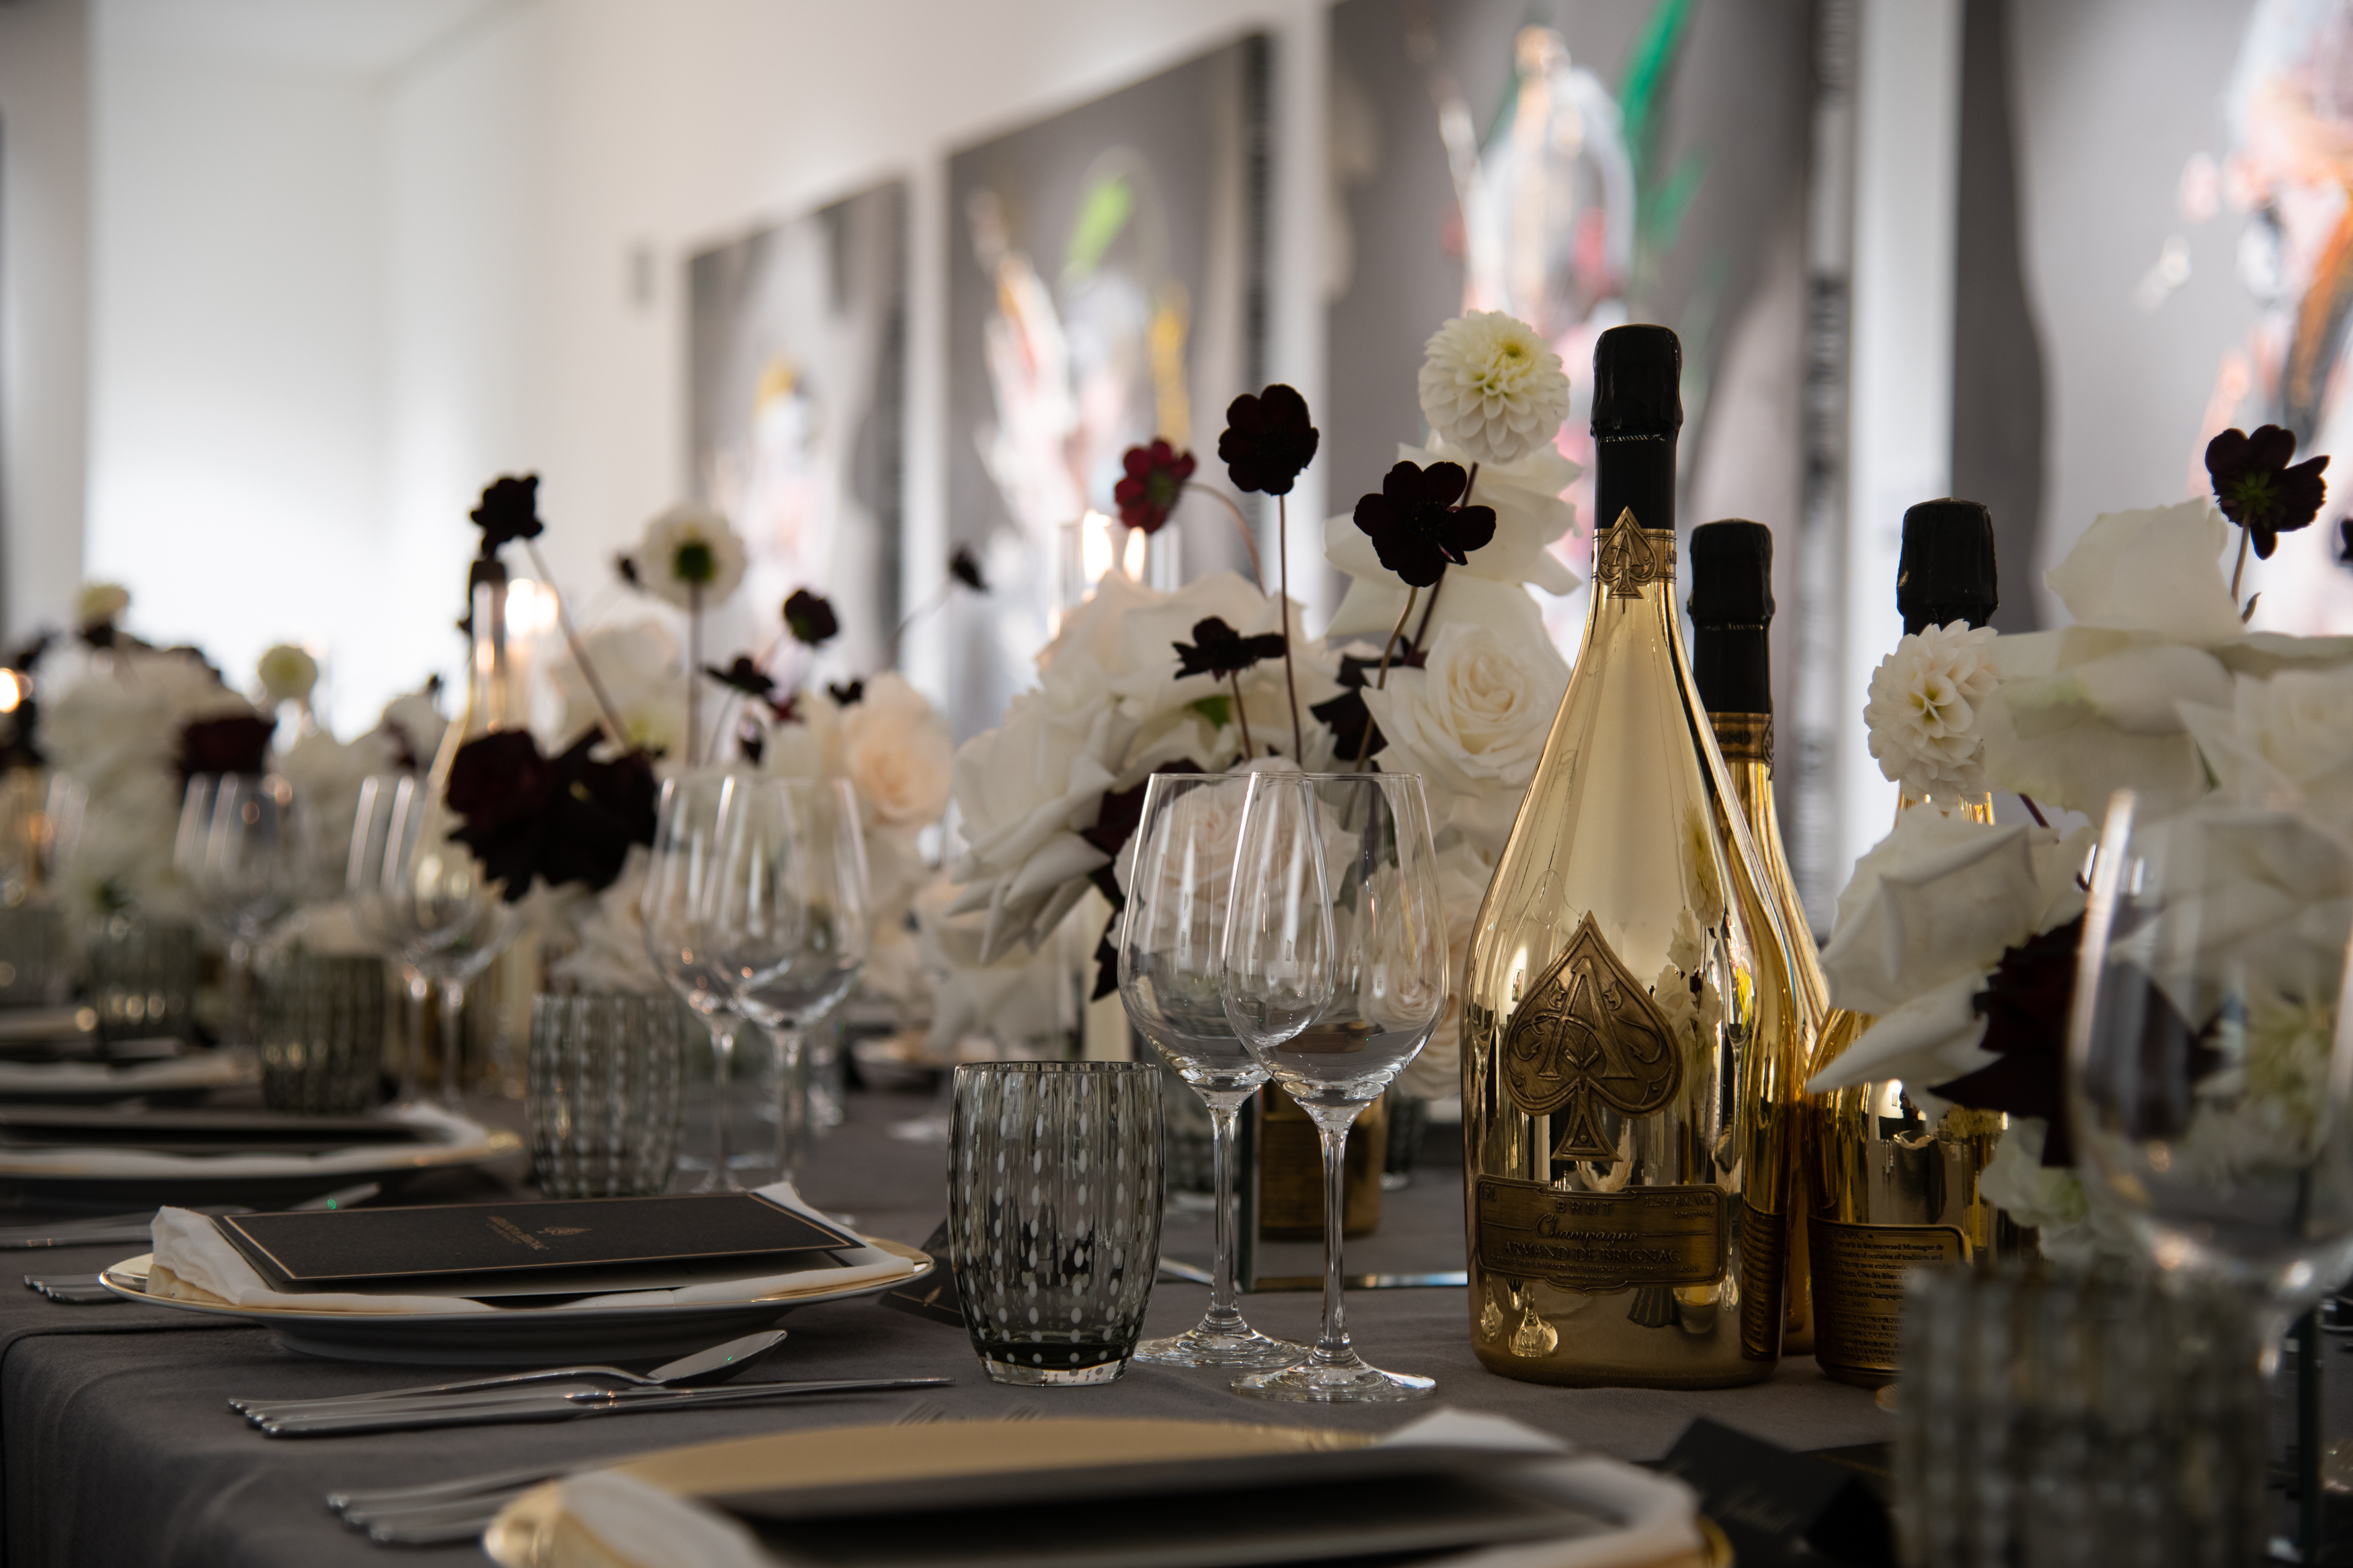 Armand De Brignac Toasts The Art World In London, Hosting A Prestige Champagne Dinner With Jean-David Malat - Armand de Brignac Champagne